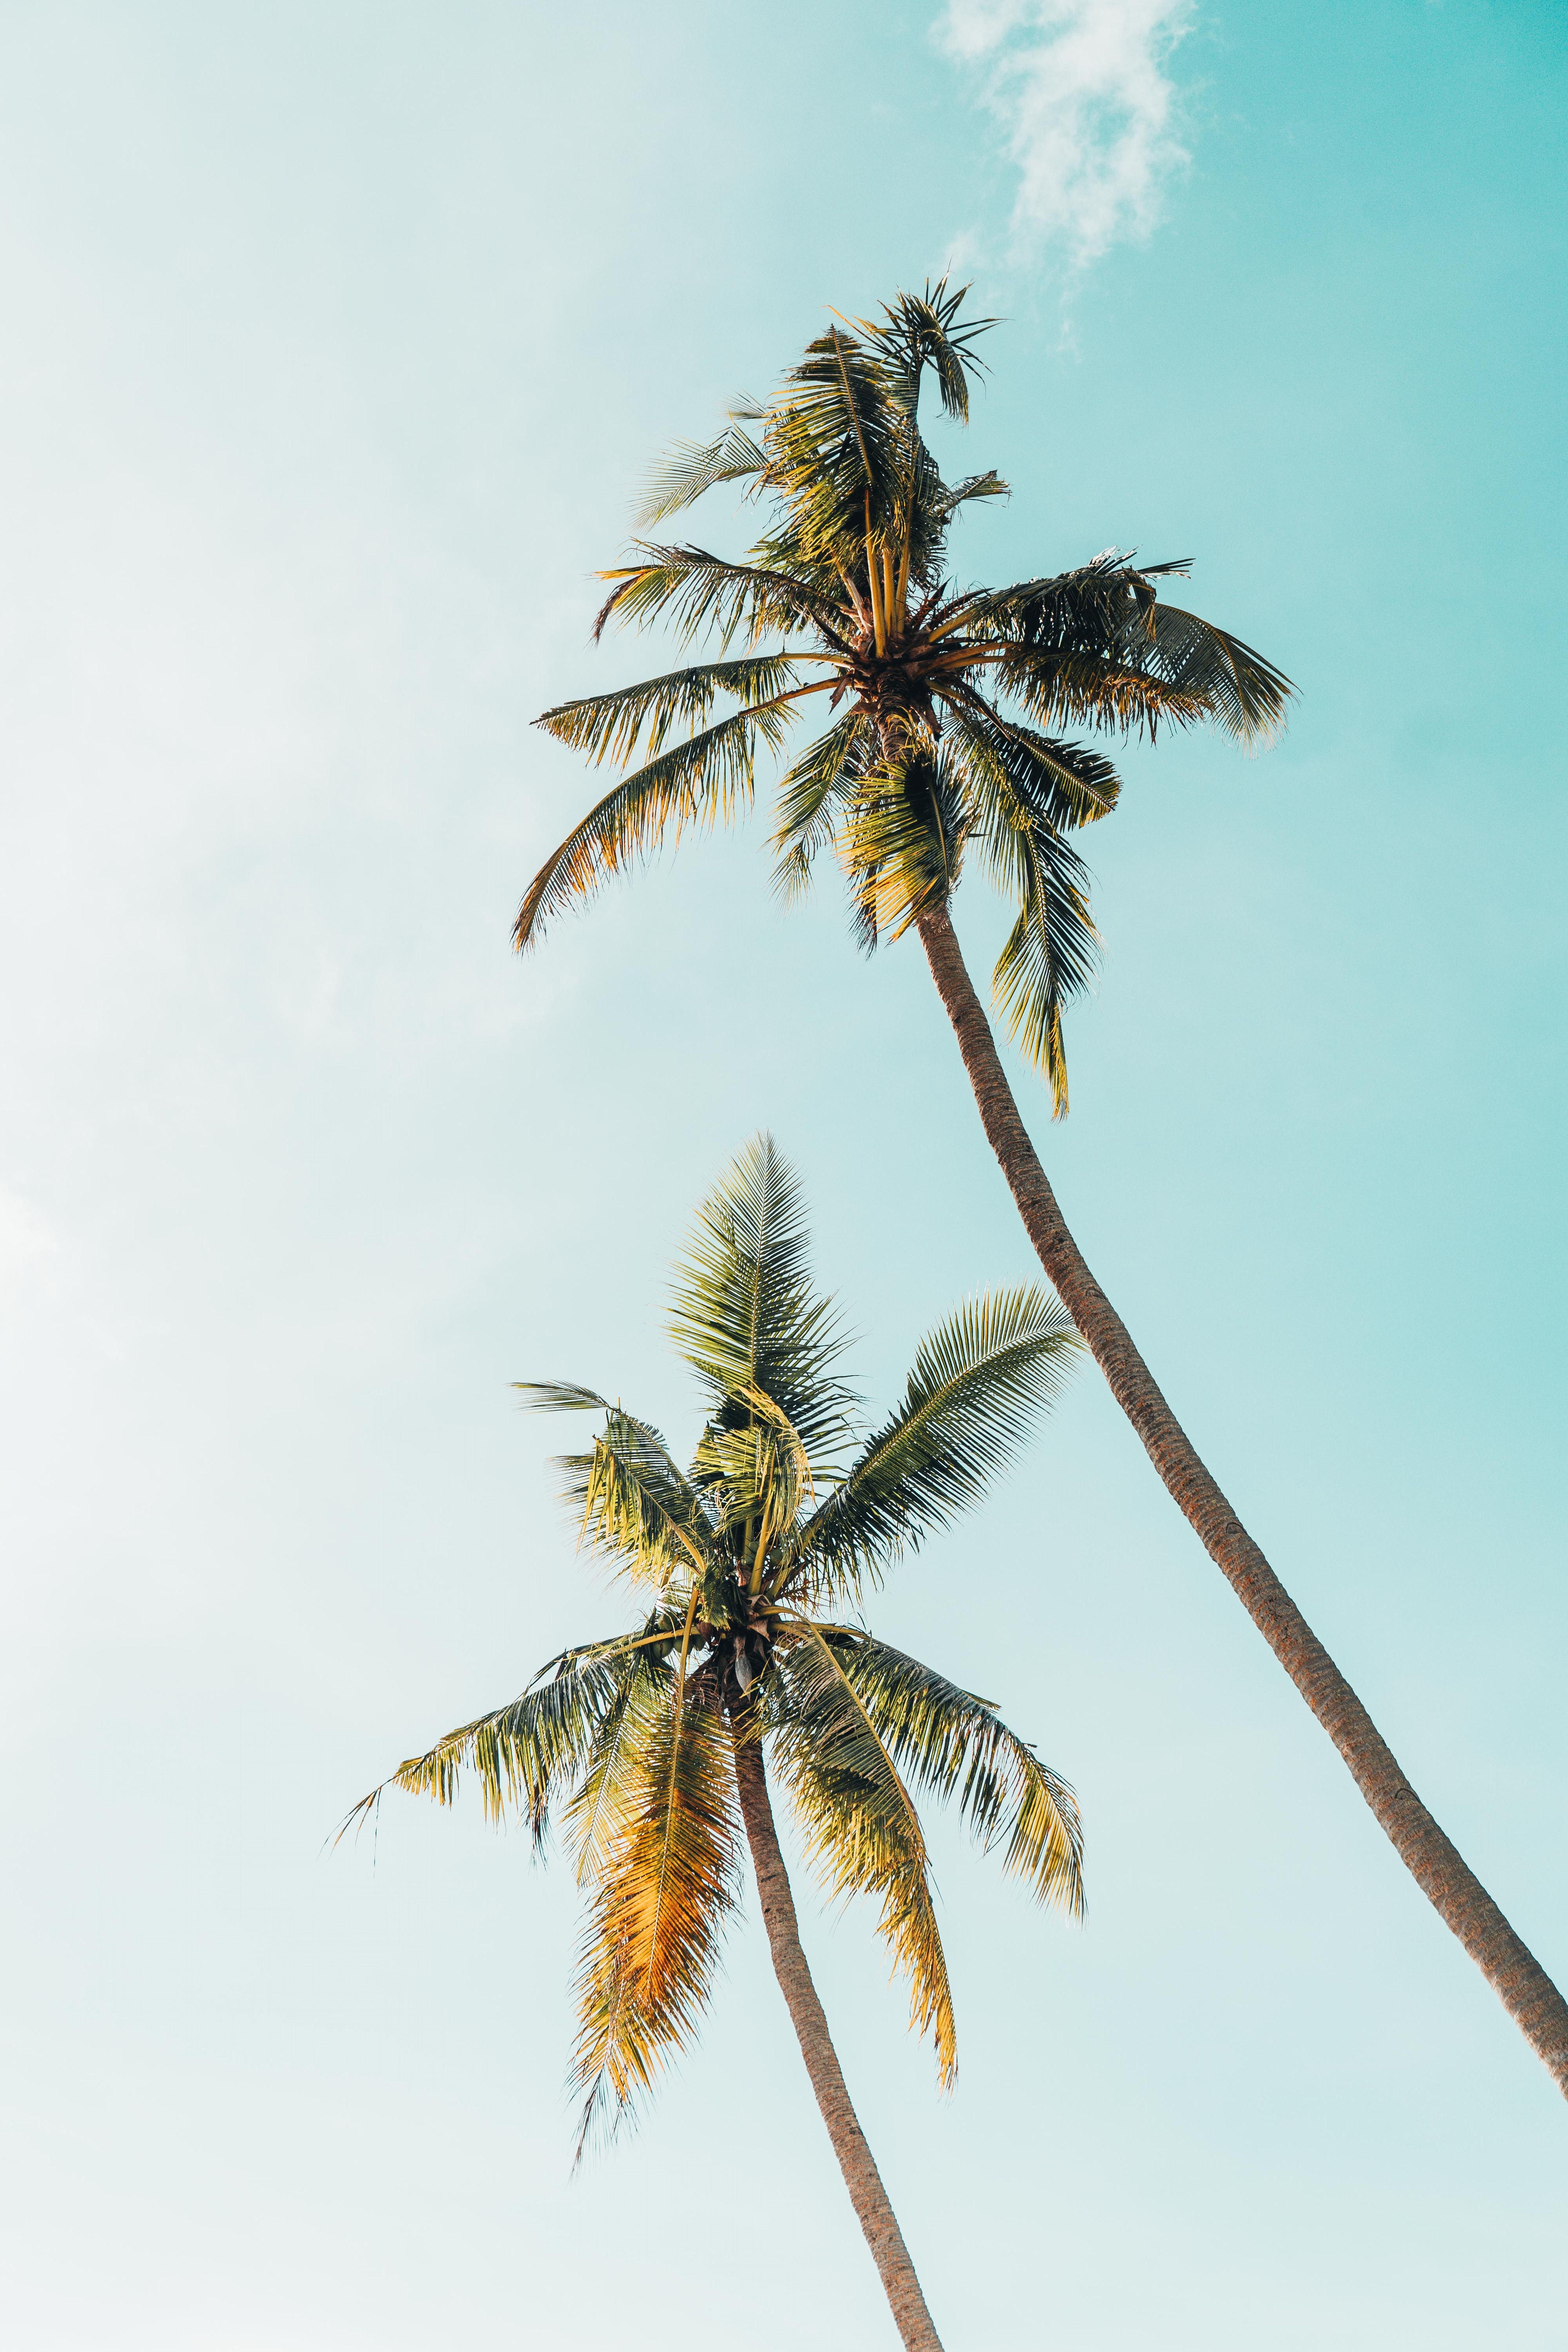 Tree, palm tree, sun and sky HD photo by James Connolly